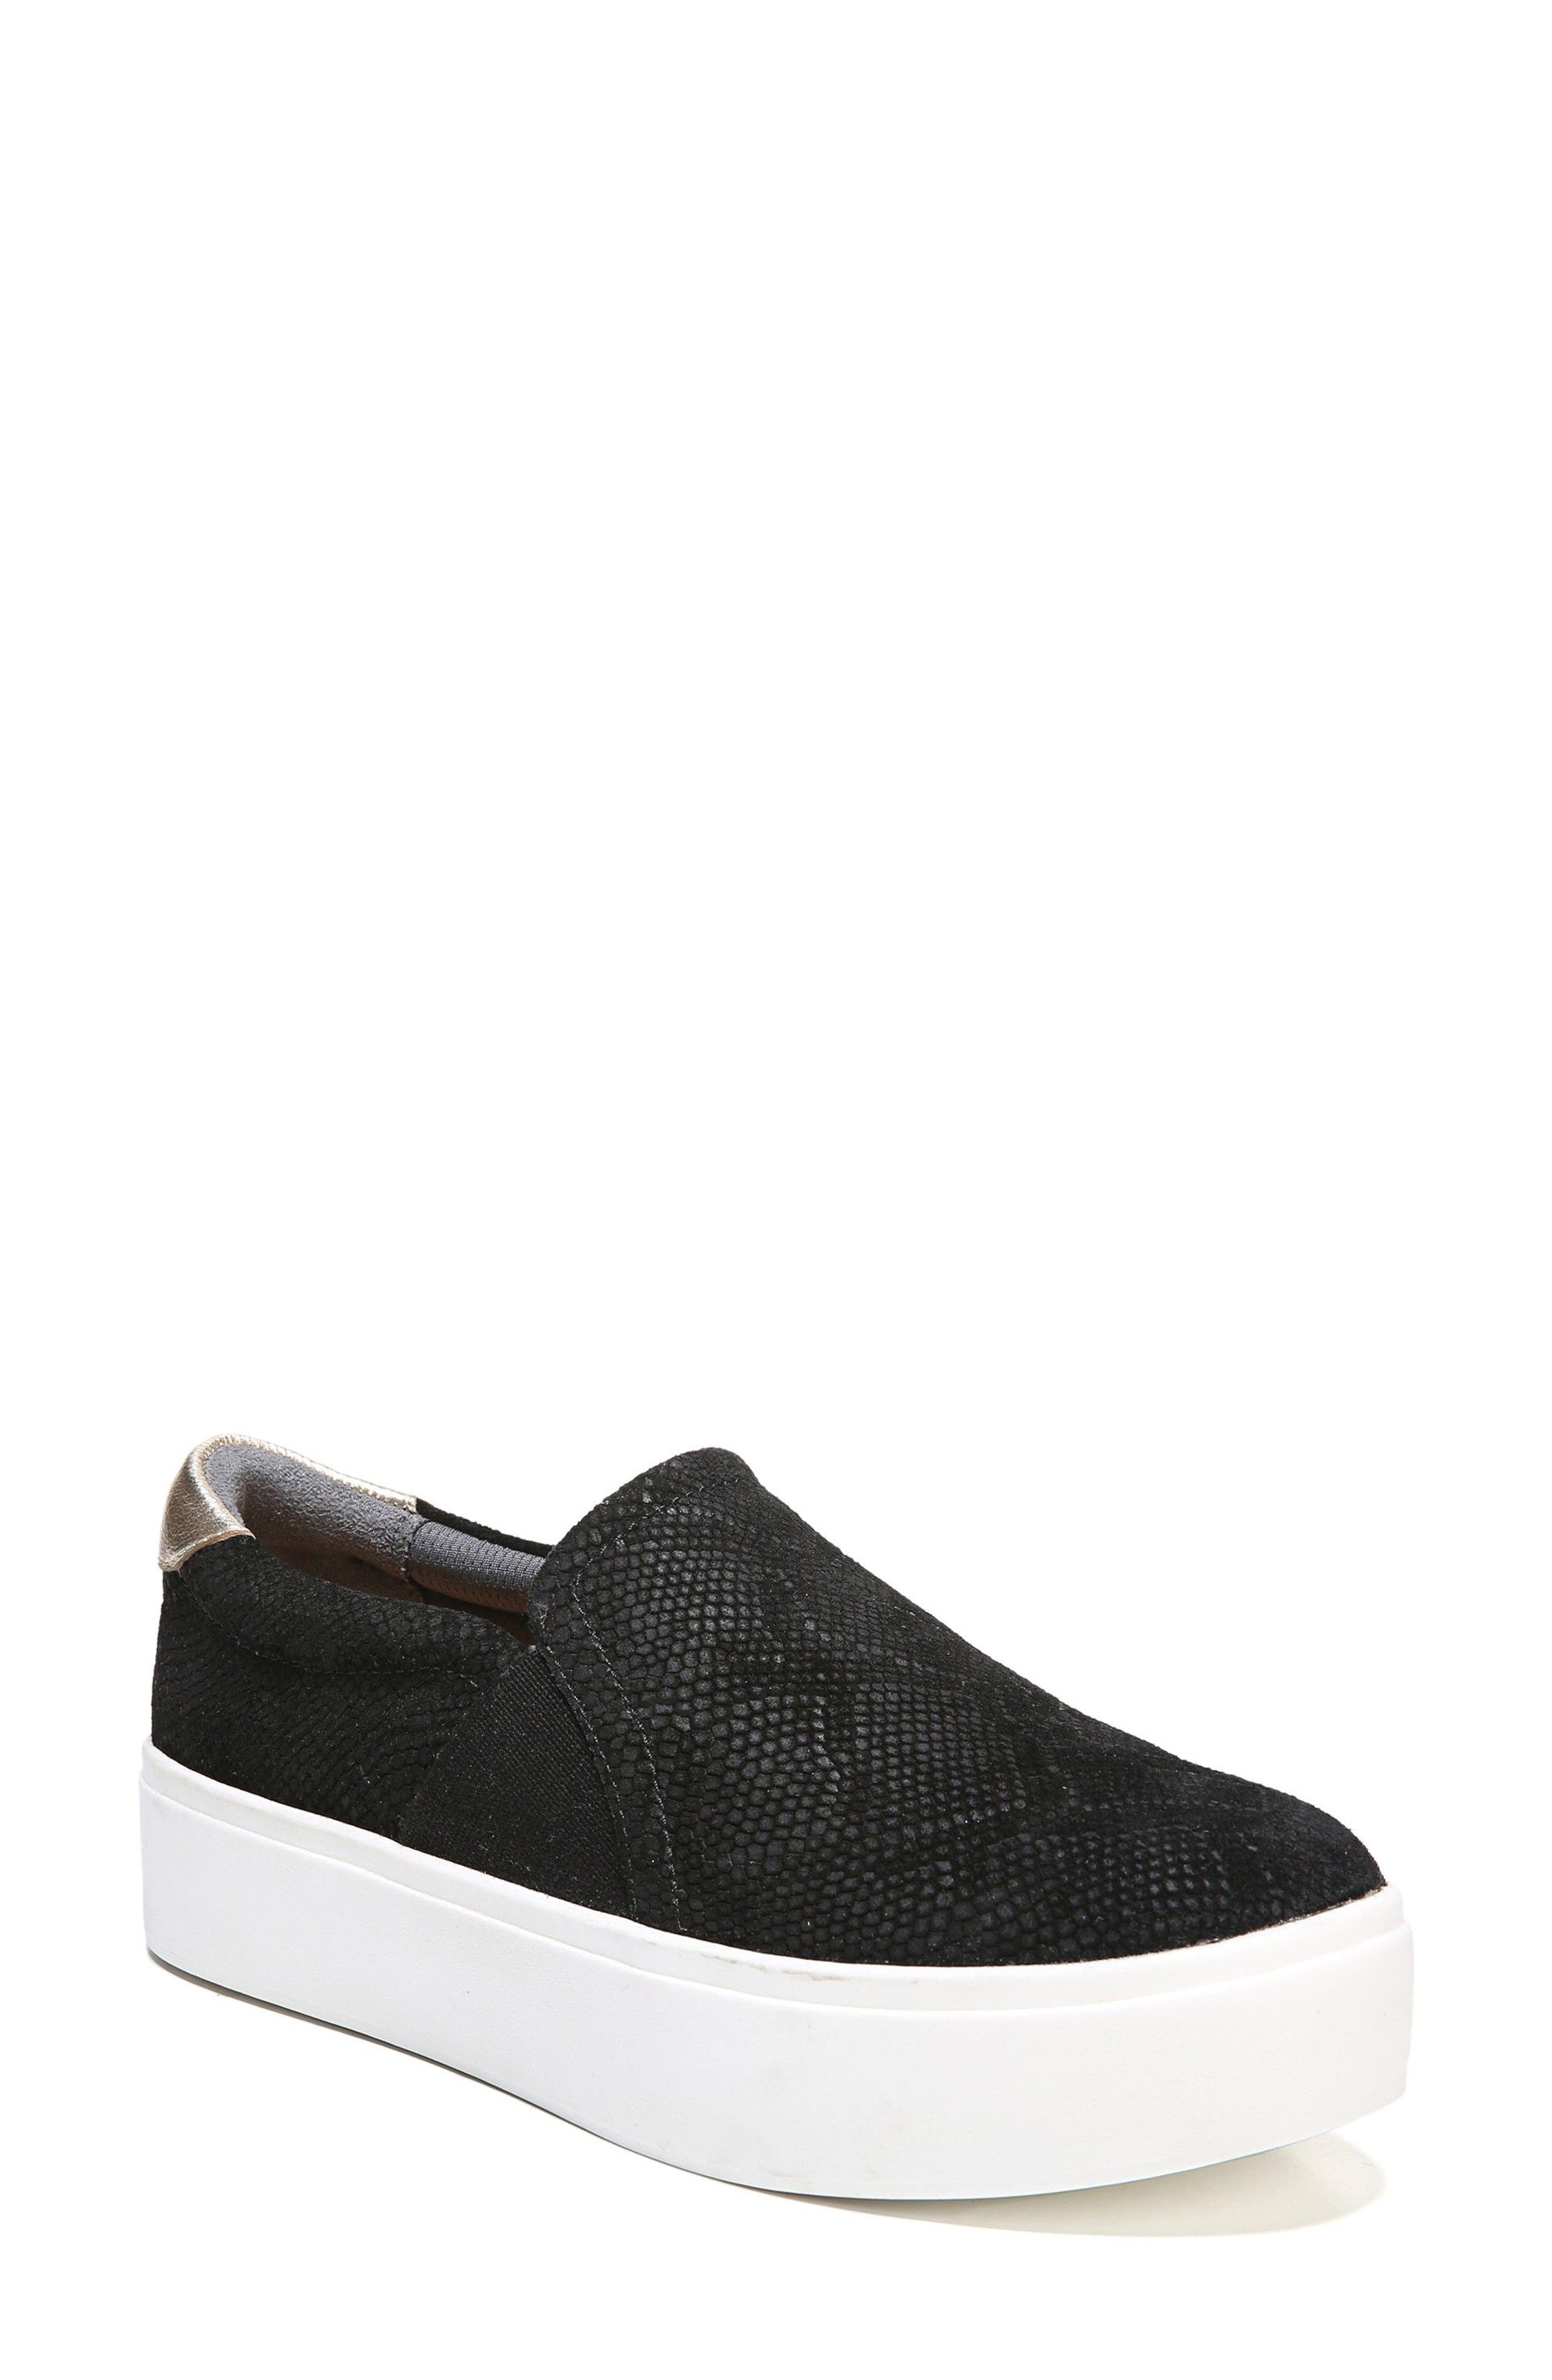 DR. SCHOLL'S Abbot Slip-On Sneaker, Main, color, BLACK SUEDE